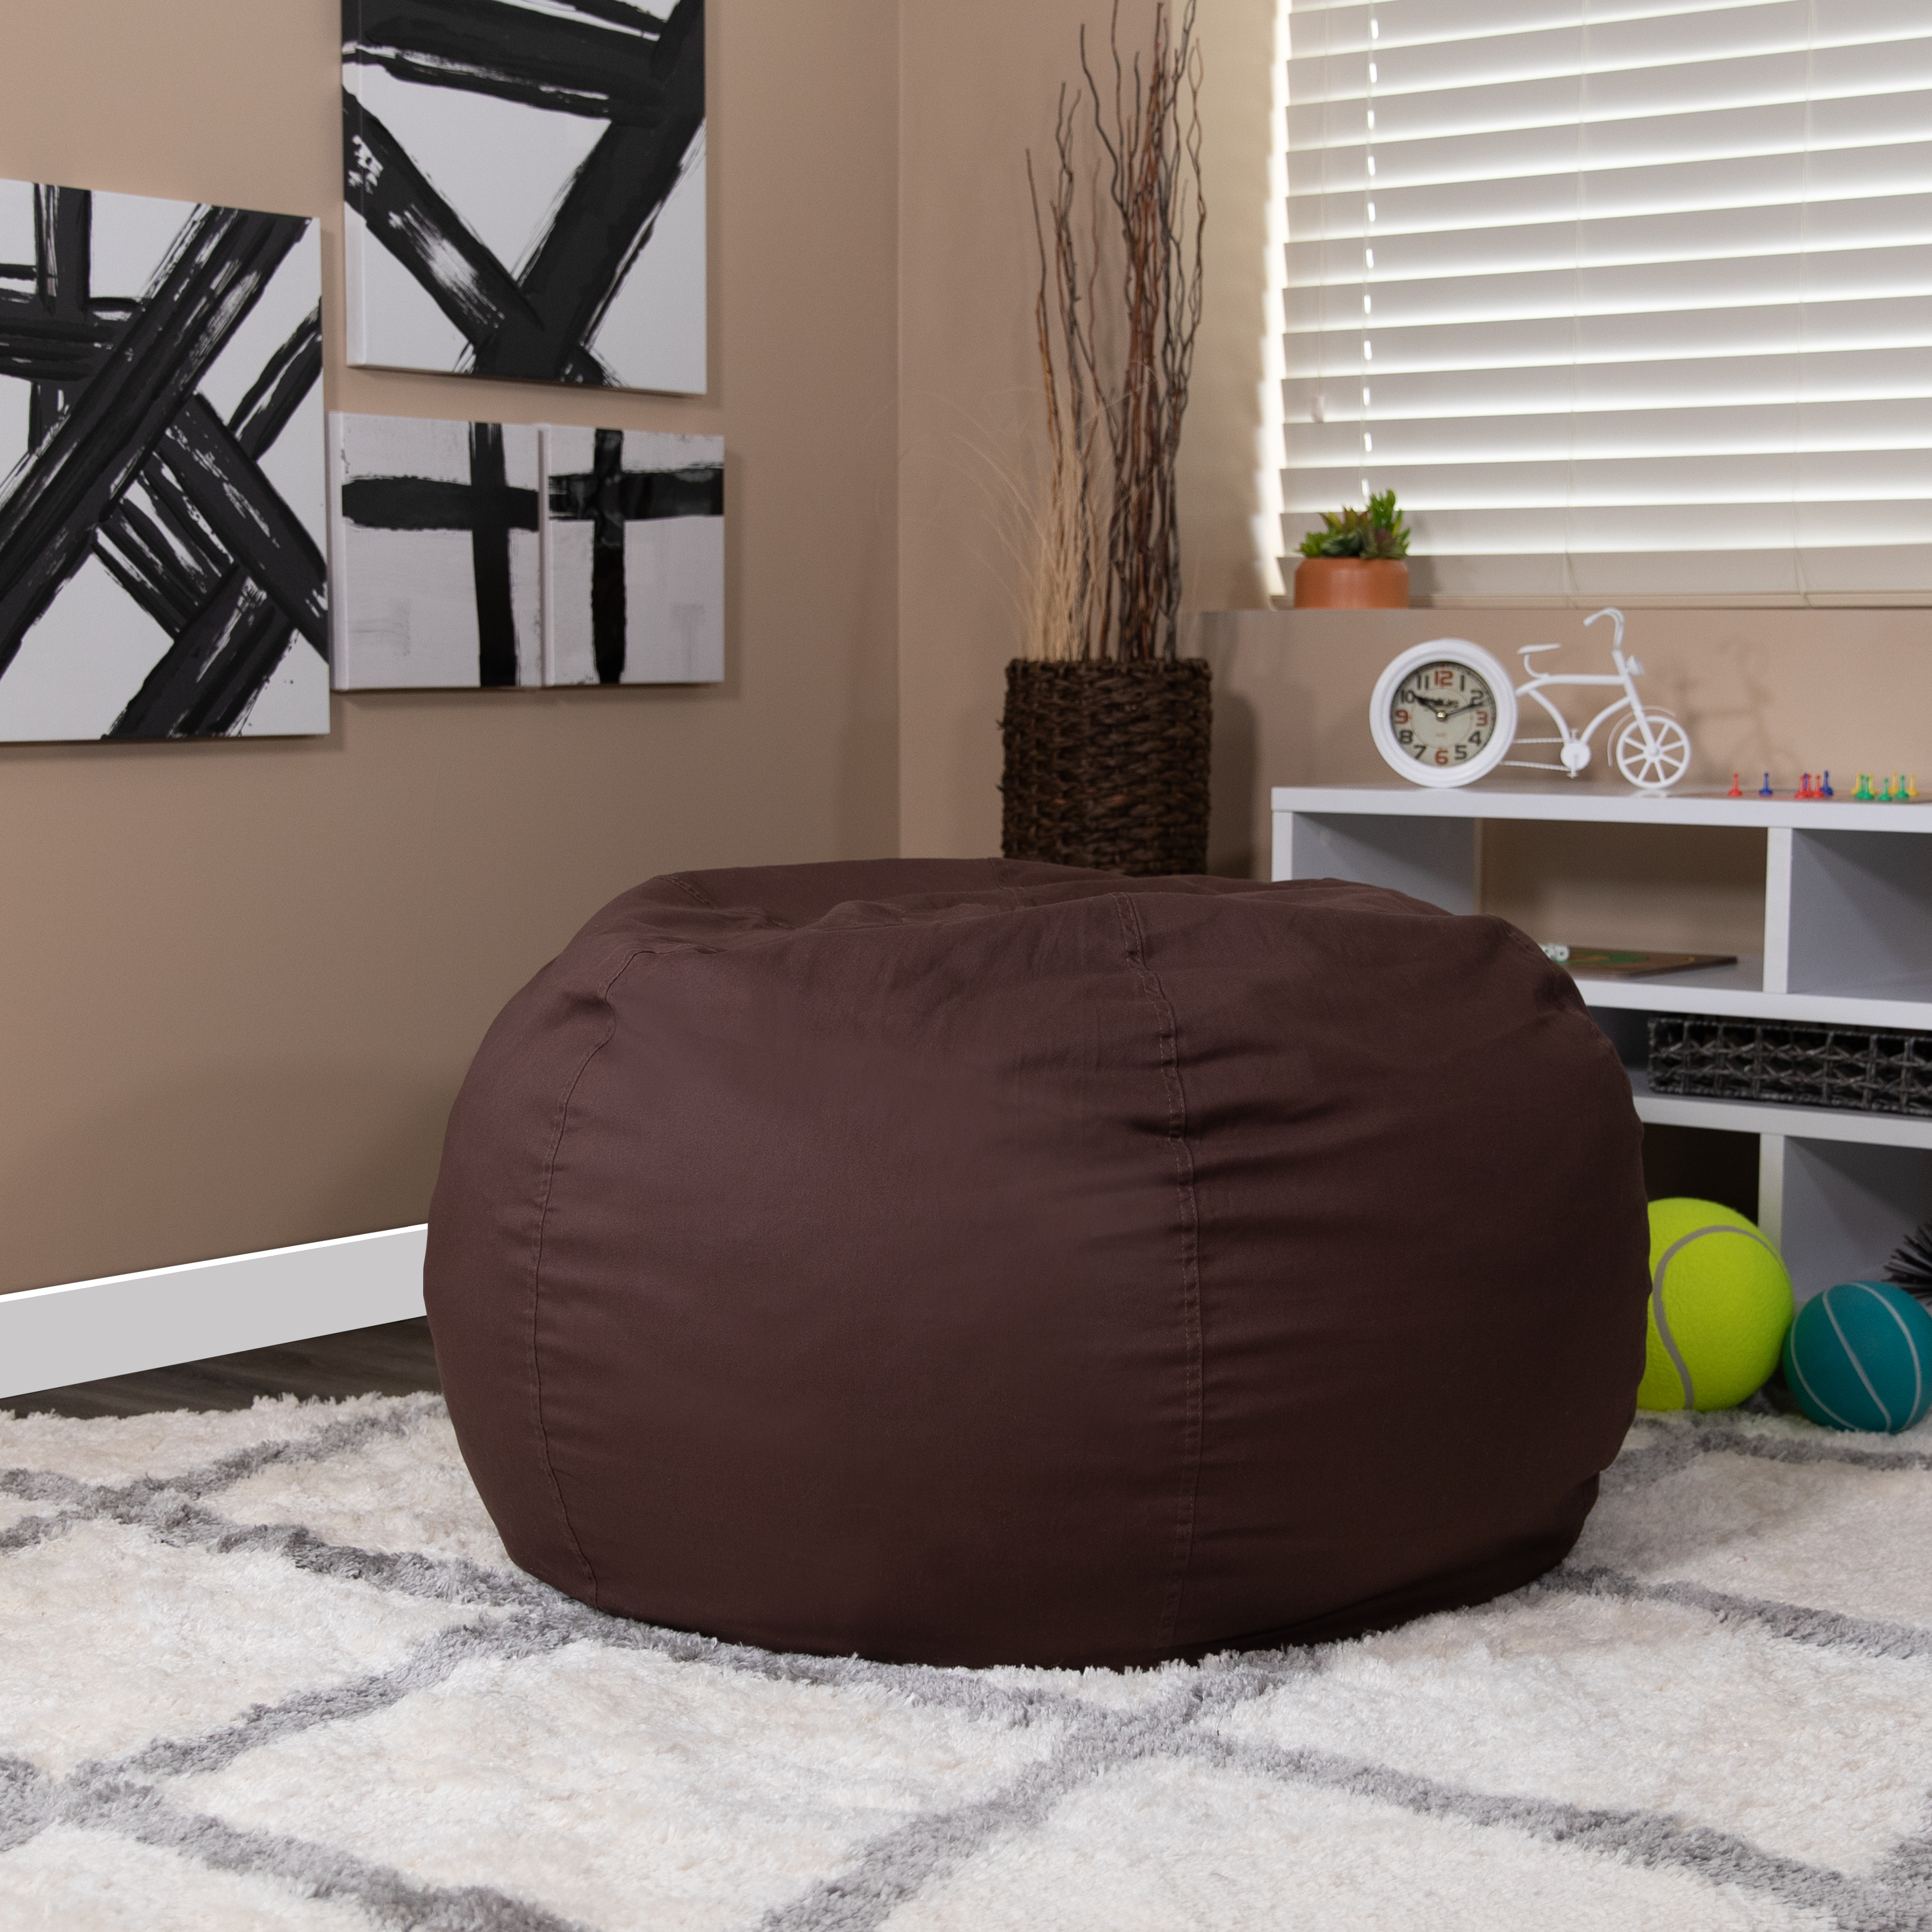 Prime Oversized Bean Bag Chair For Kids And Adults Caraccident5 Cool Chair Designs And Ideas Caraccident5Info